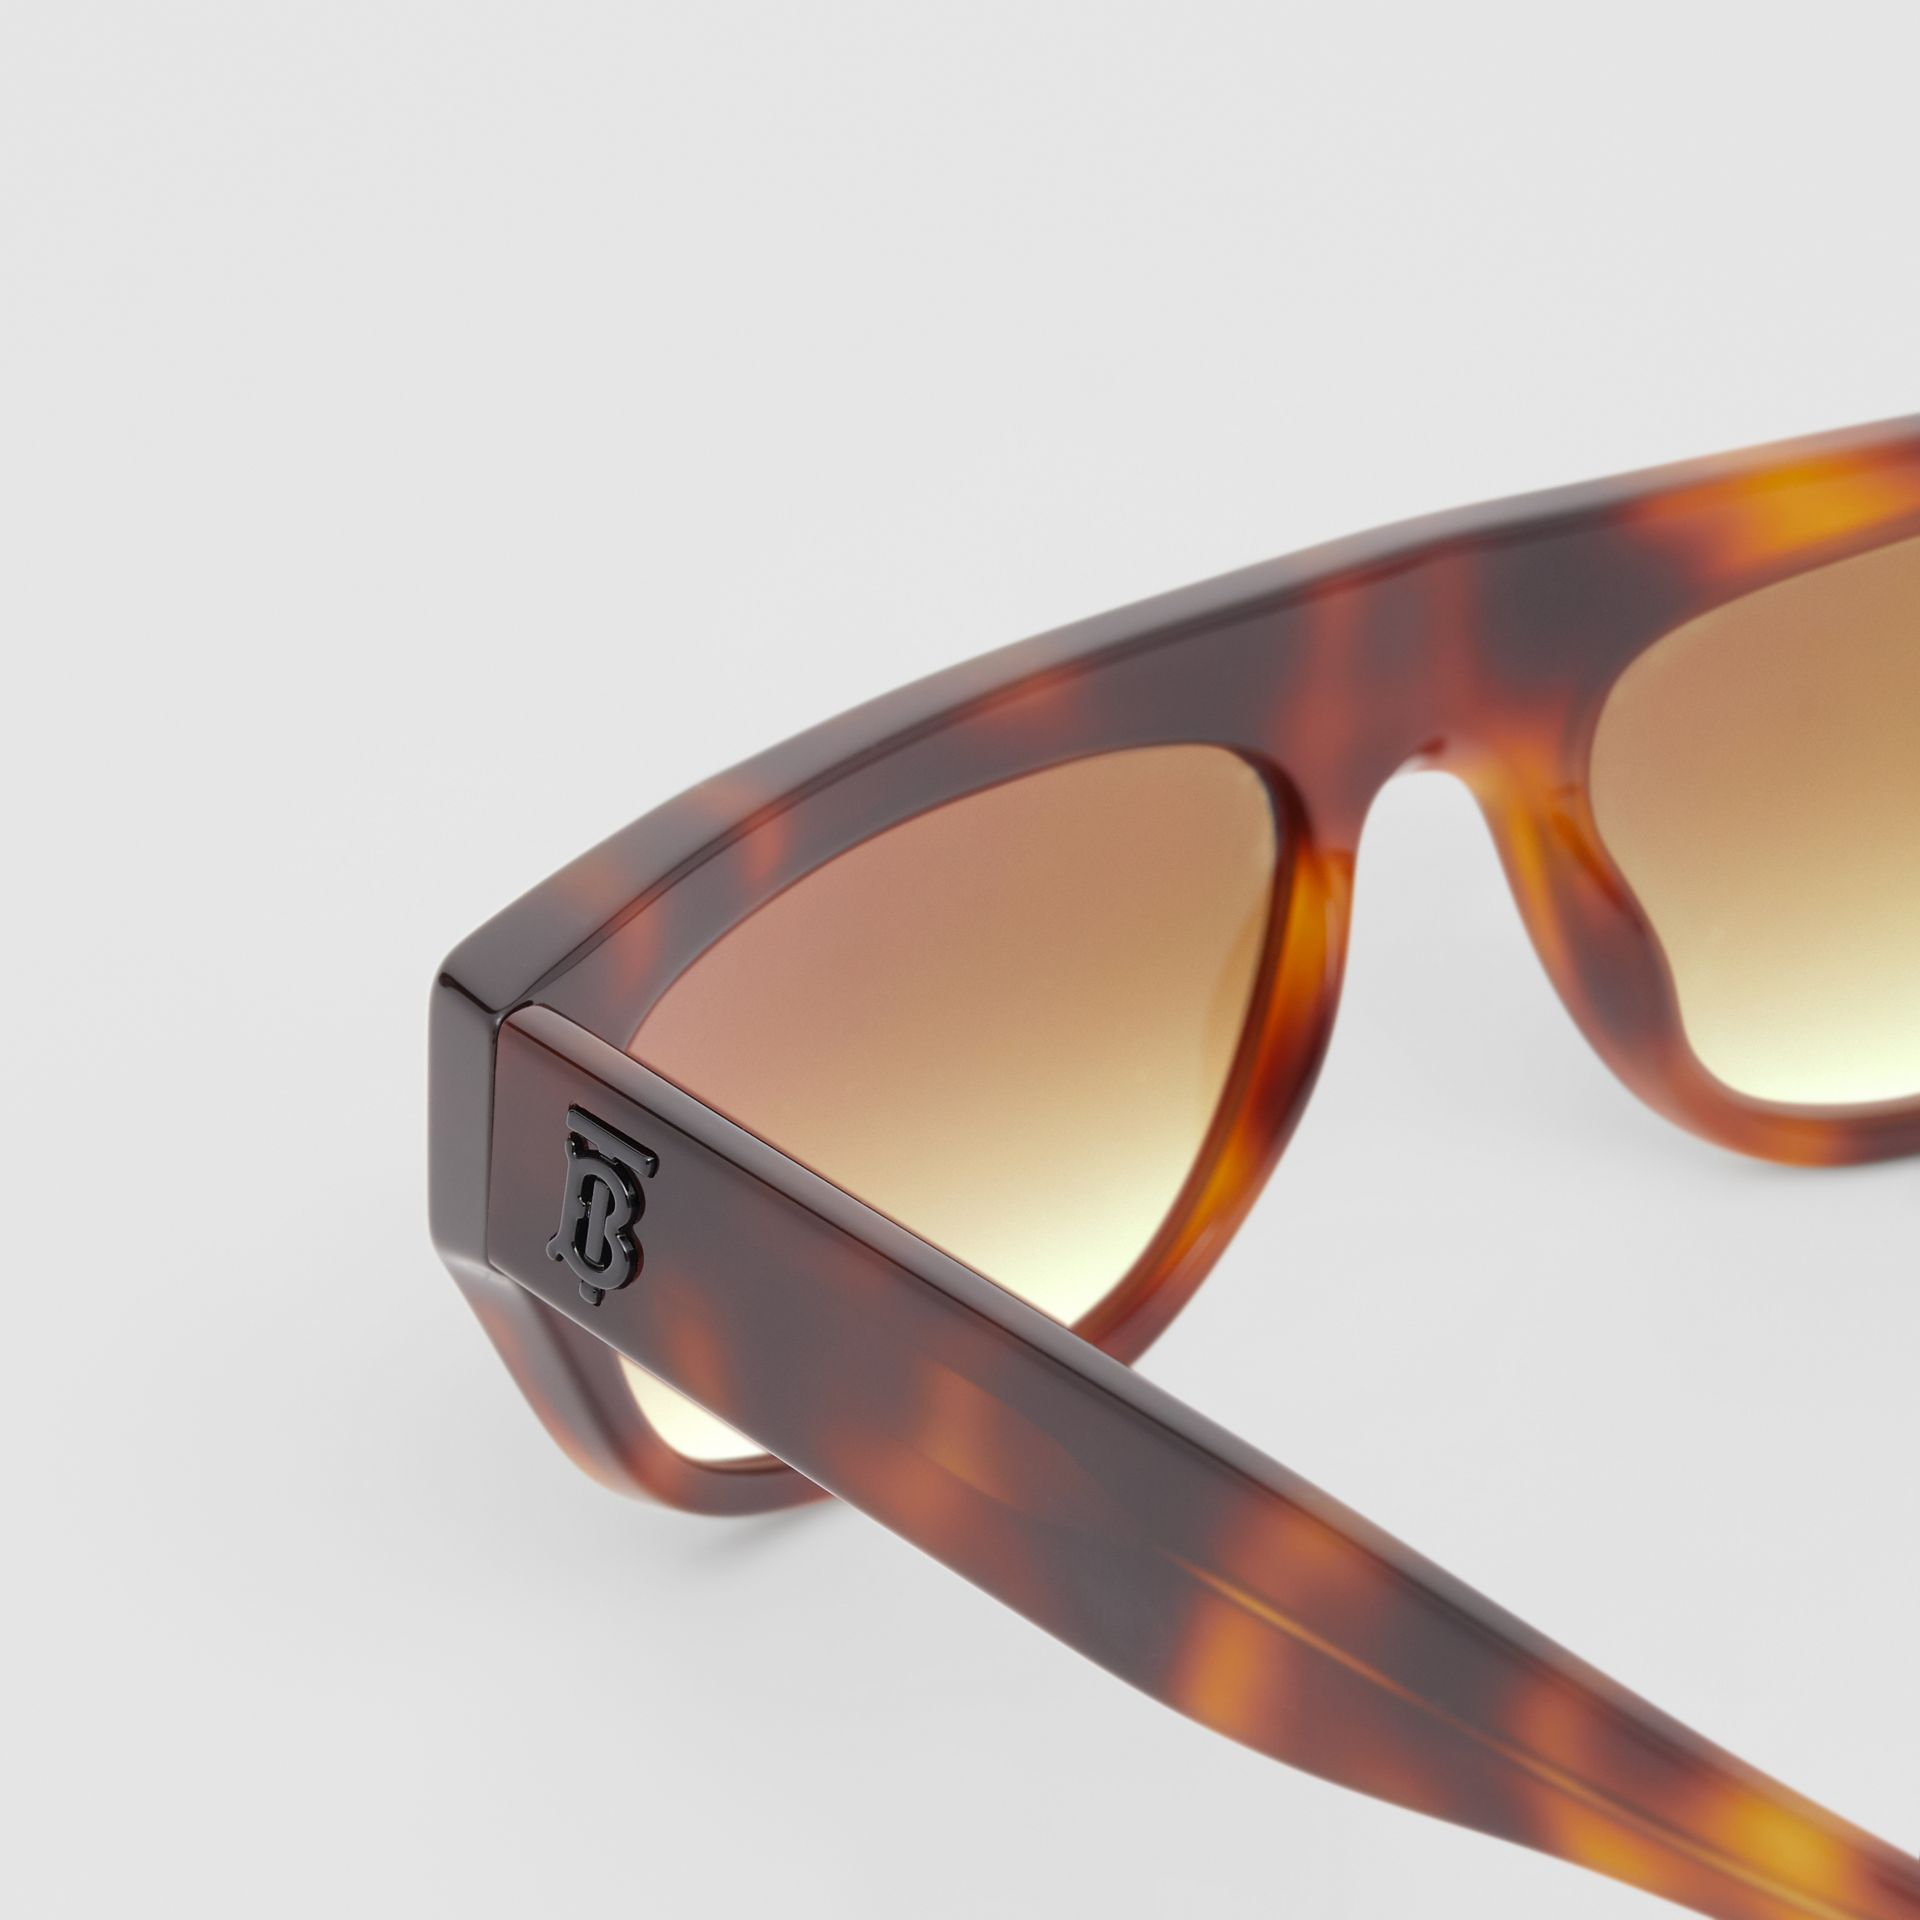 Monogram Motif Rectangular Frame Sunglasses in Amber Tortoiseshell | Burberry - gallery image 6